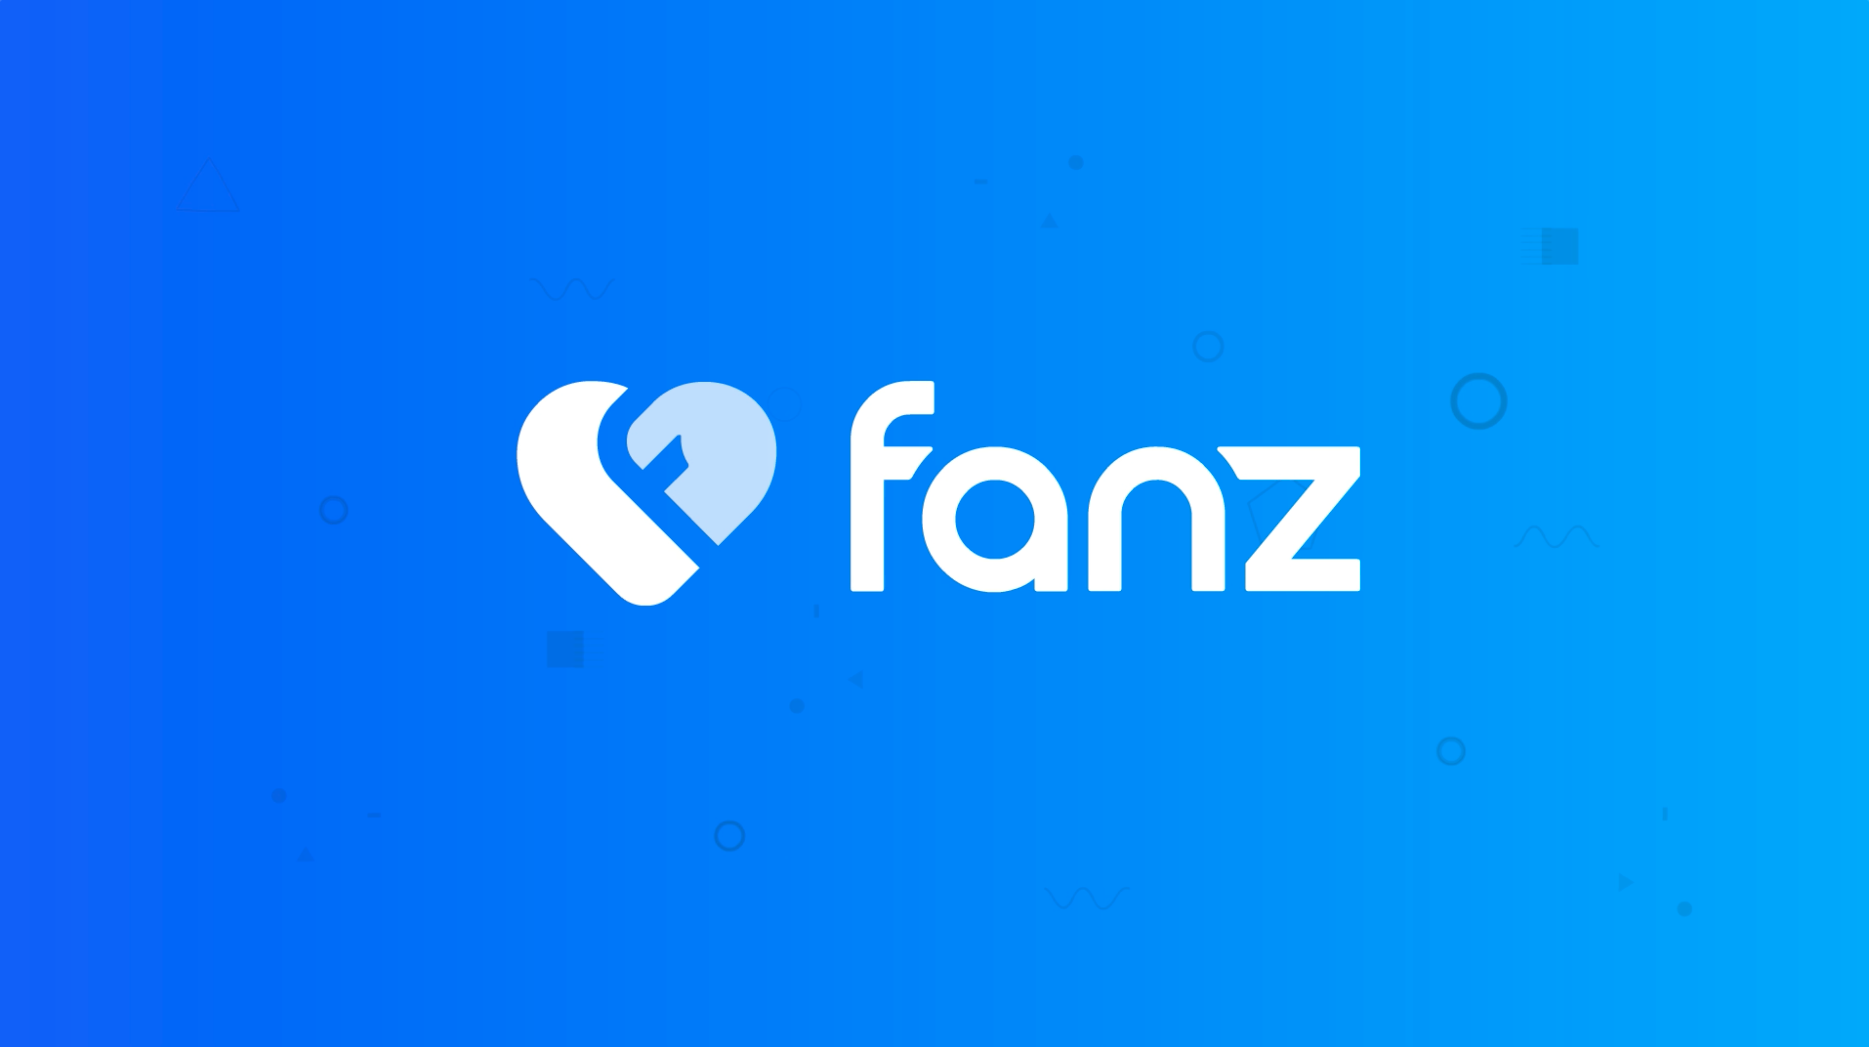 Fanz - Turns customers into fans